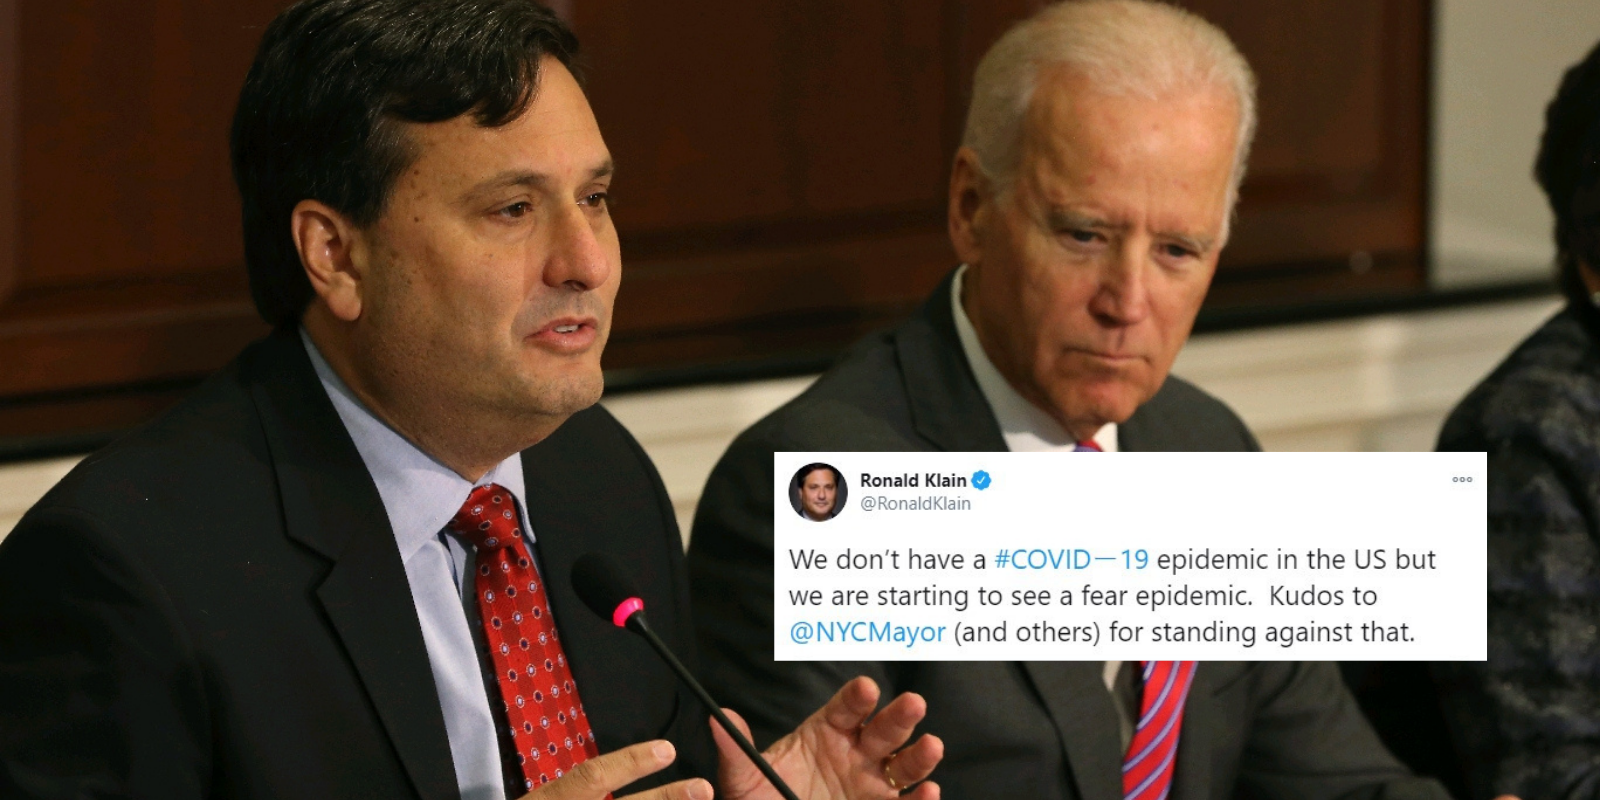 REVEALED: Joe Biden's incoming chief of staff said elections are rigged